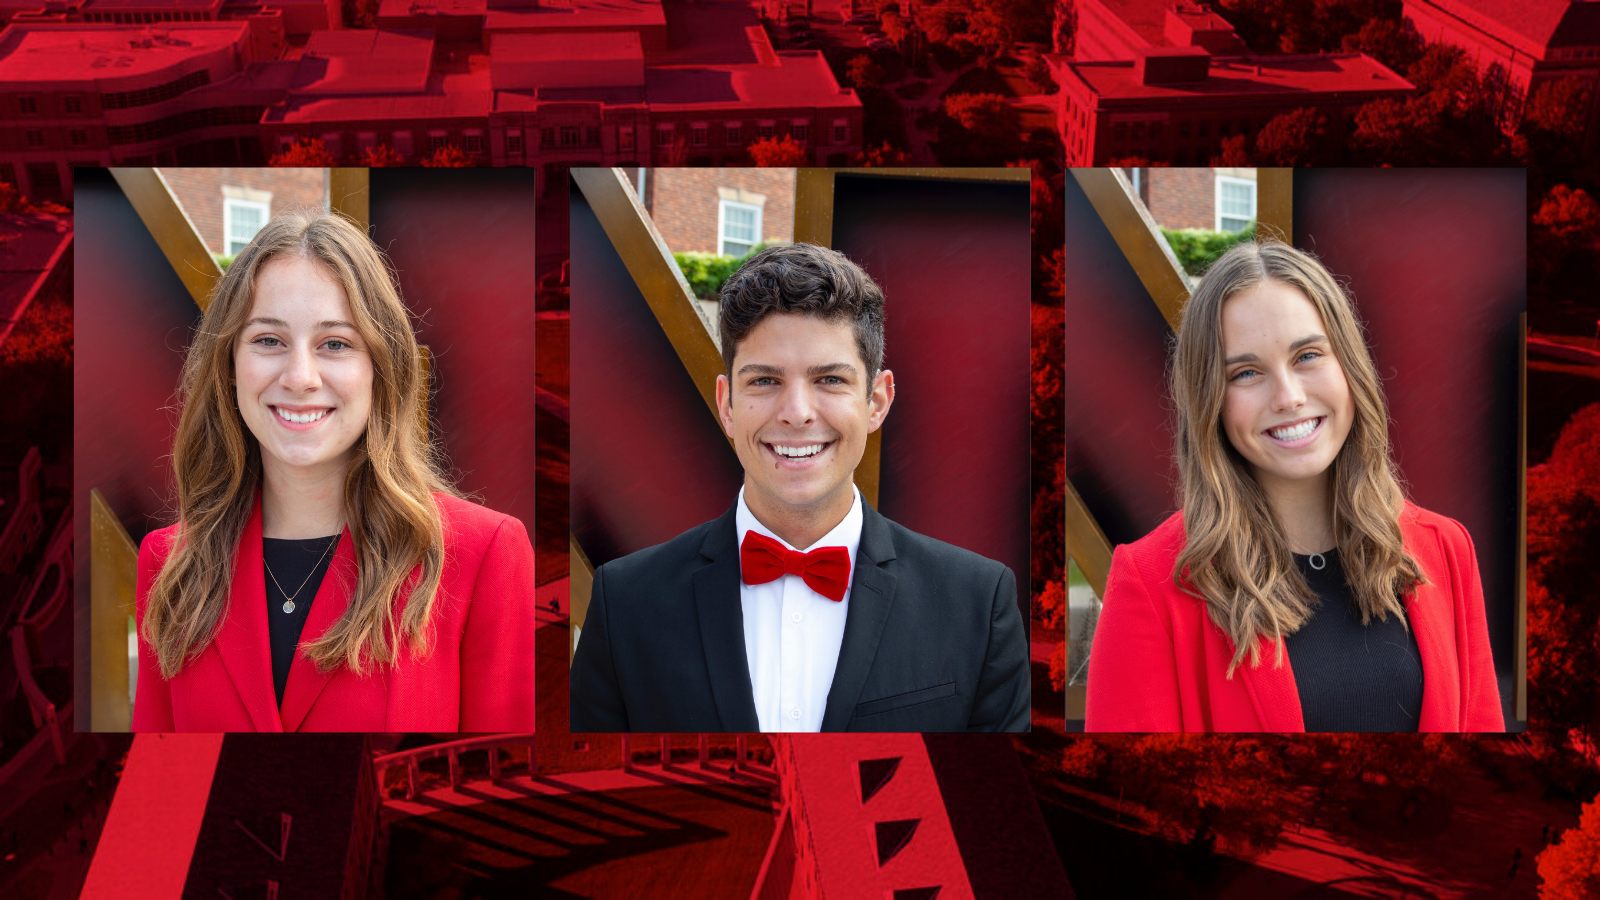 Three professional headshots on a red background.